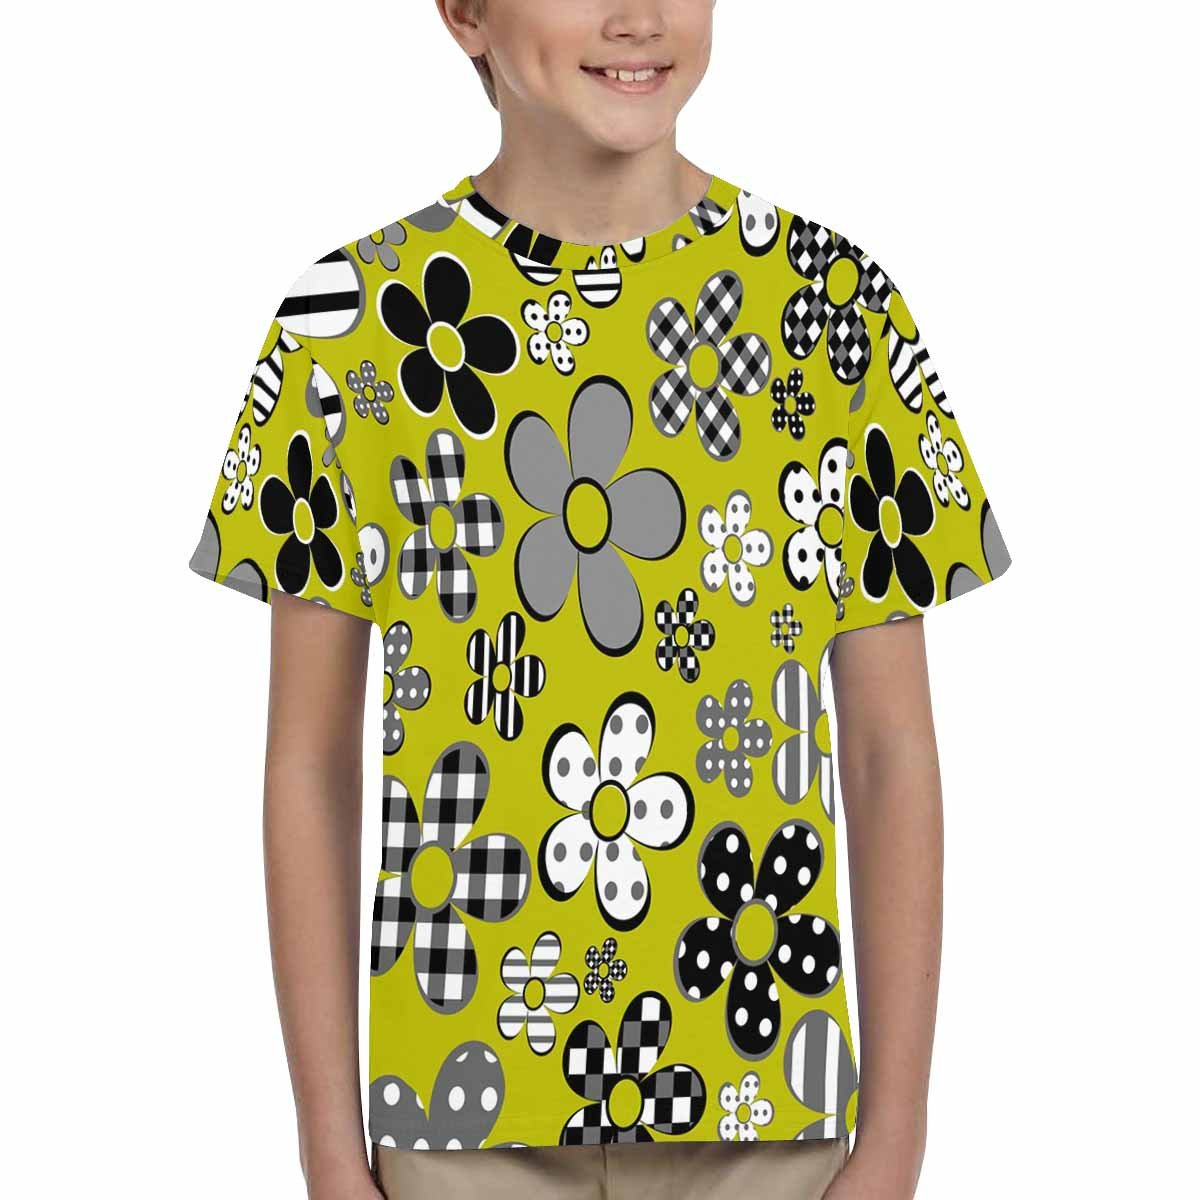 INTERESTPRINT Youth Crew Neck T-Shirt Patterned Flowers XS-XL